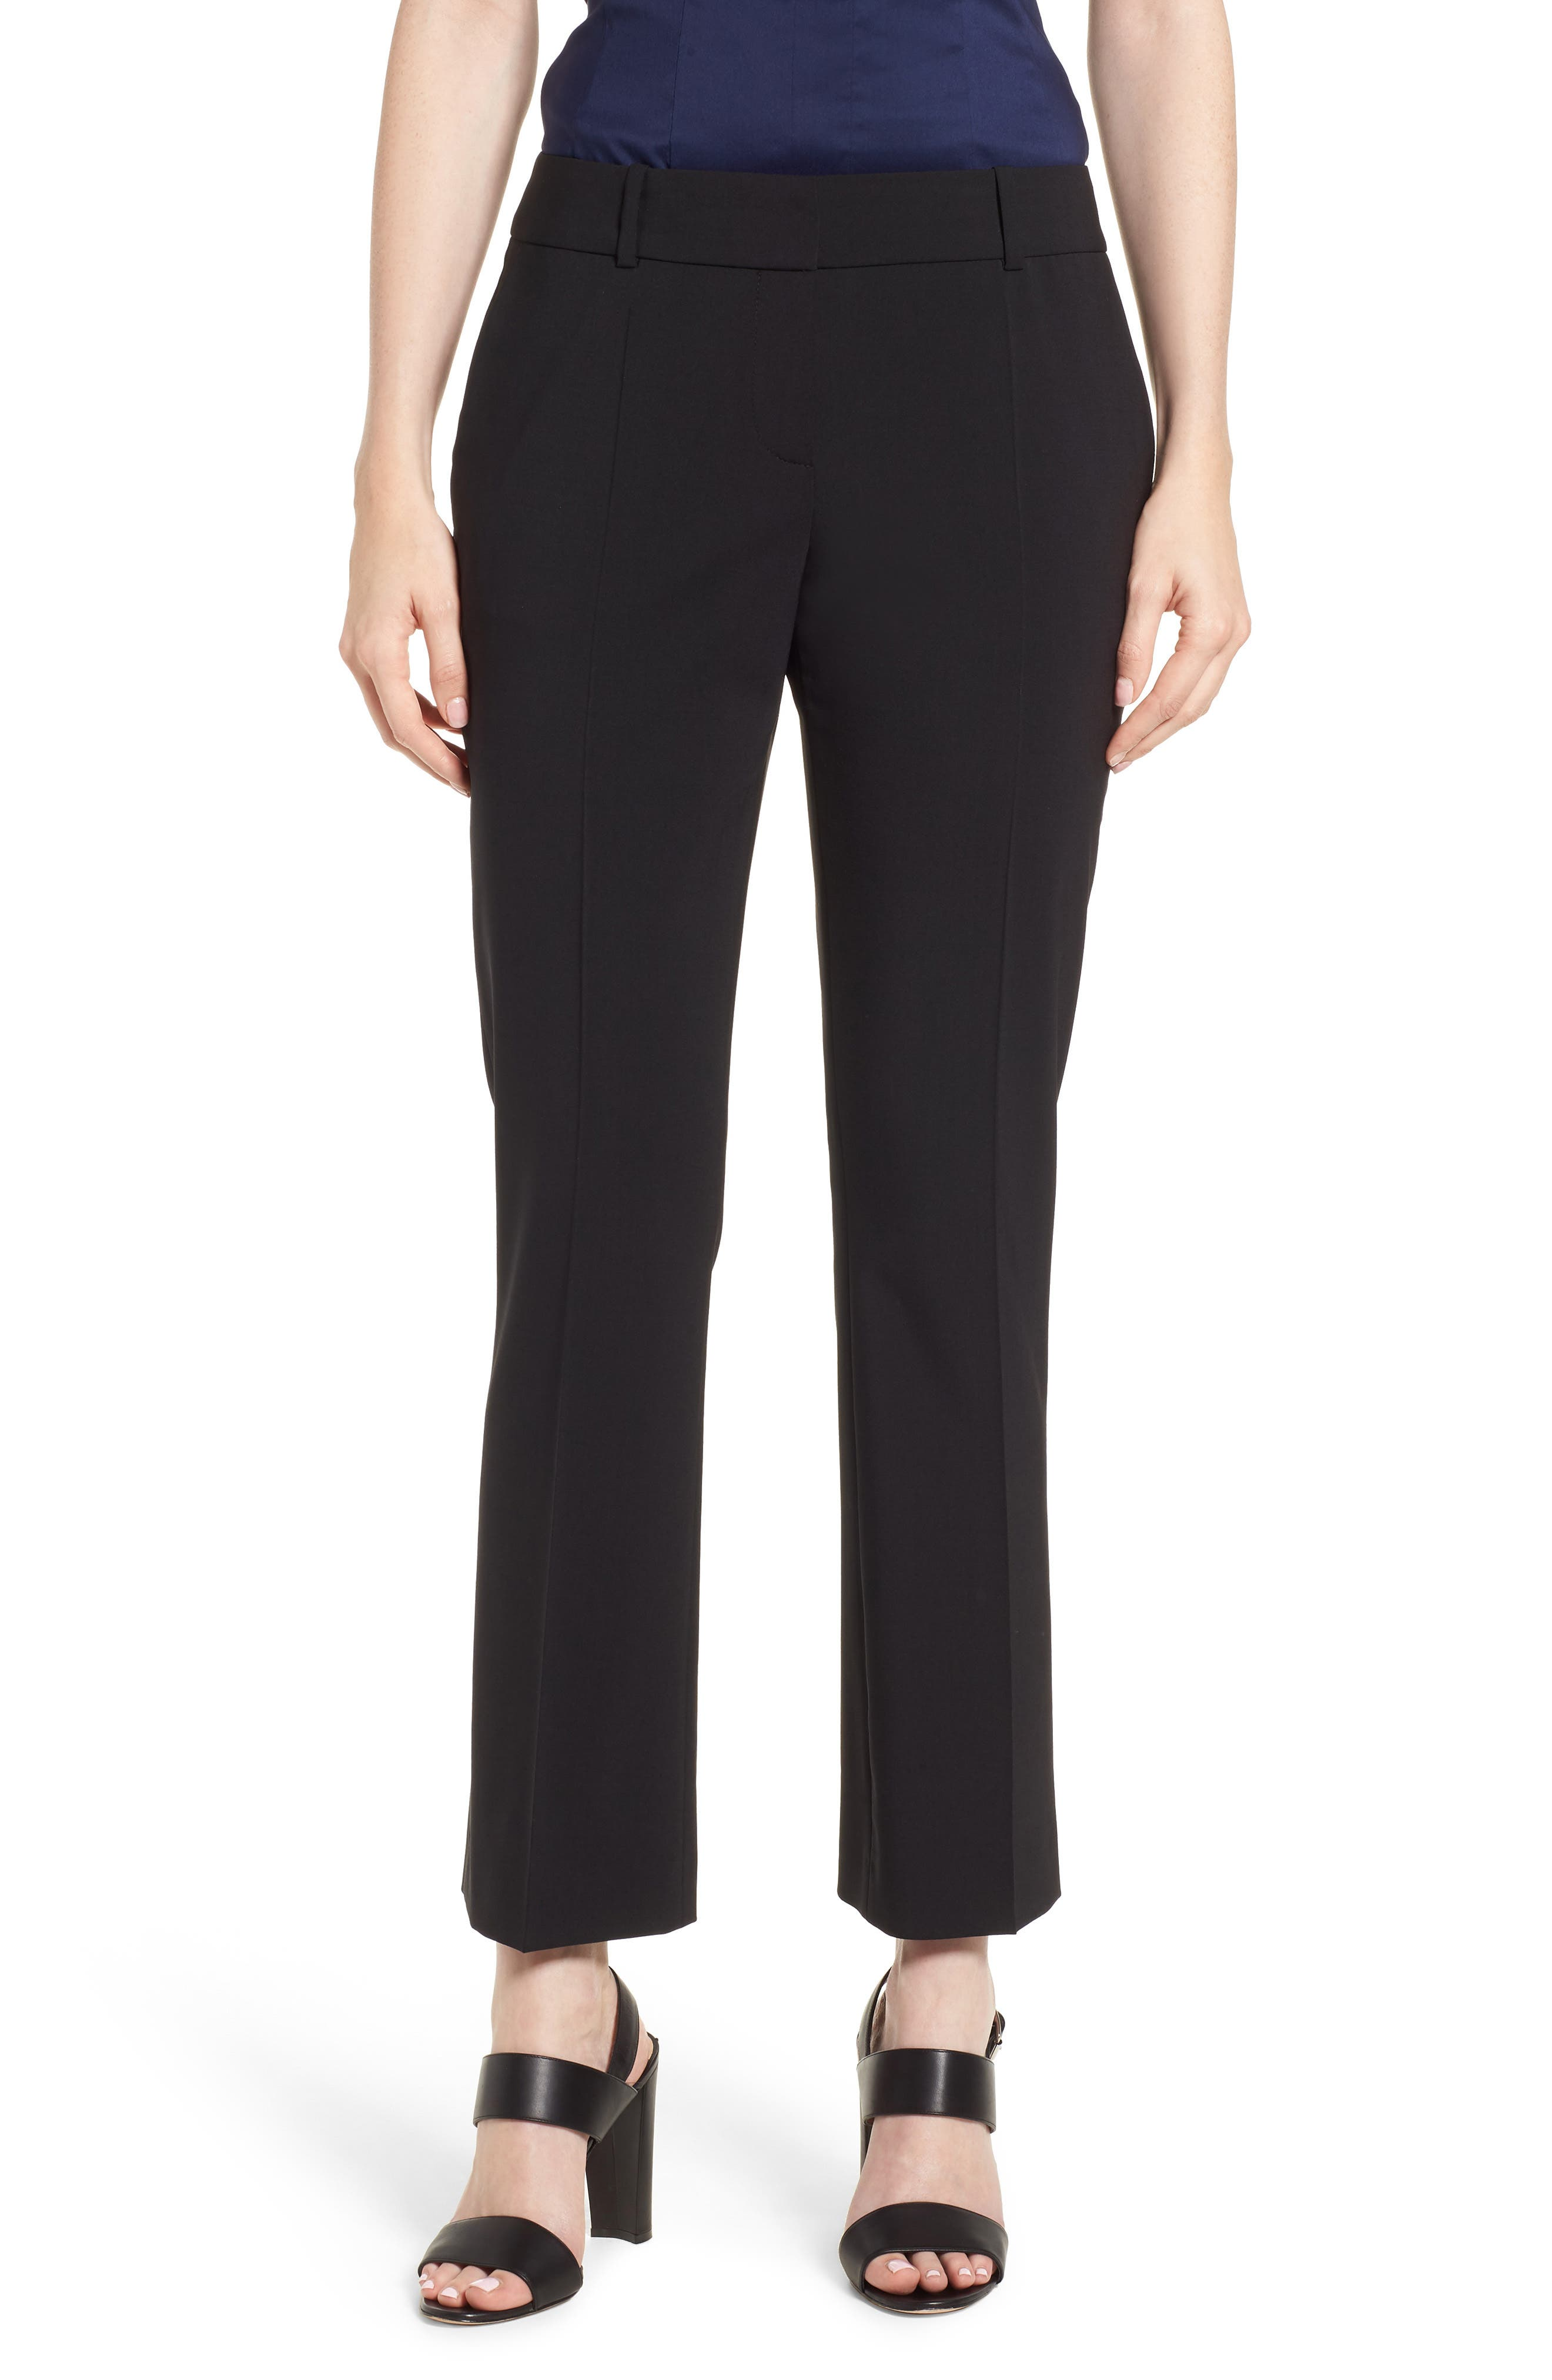 Talenara Tropical Stretch Wool Ankle Trousers,                         Main,                         color, Black